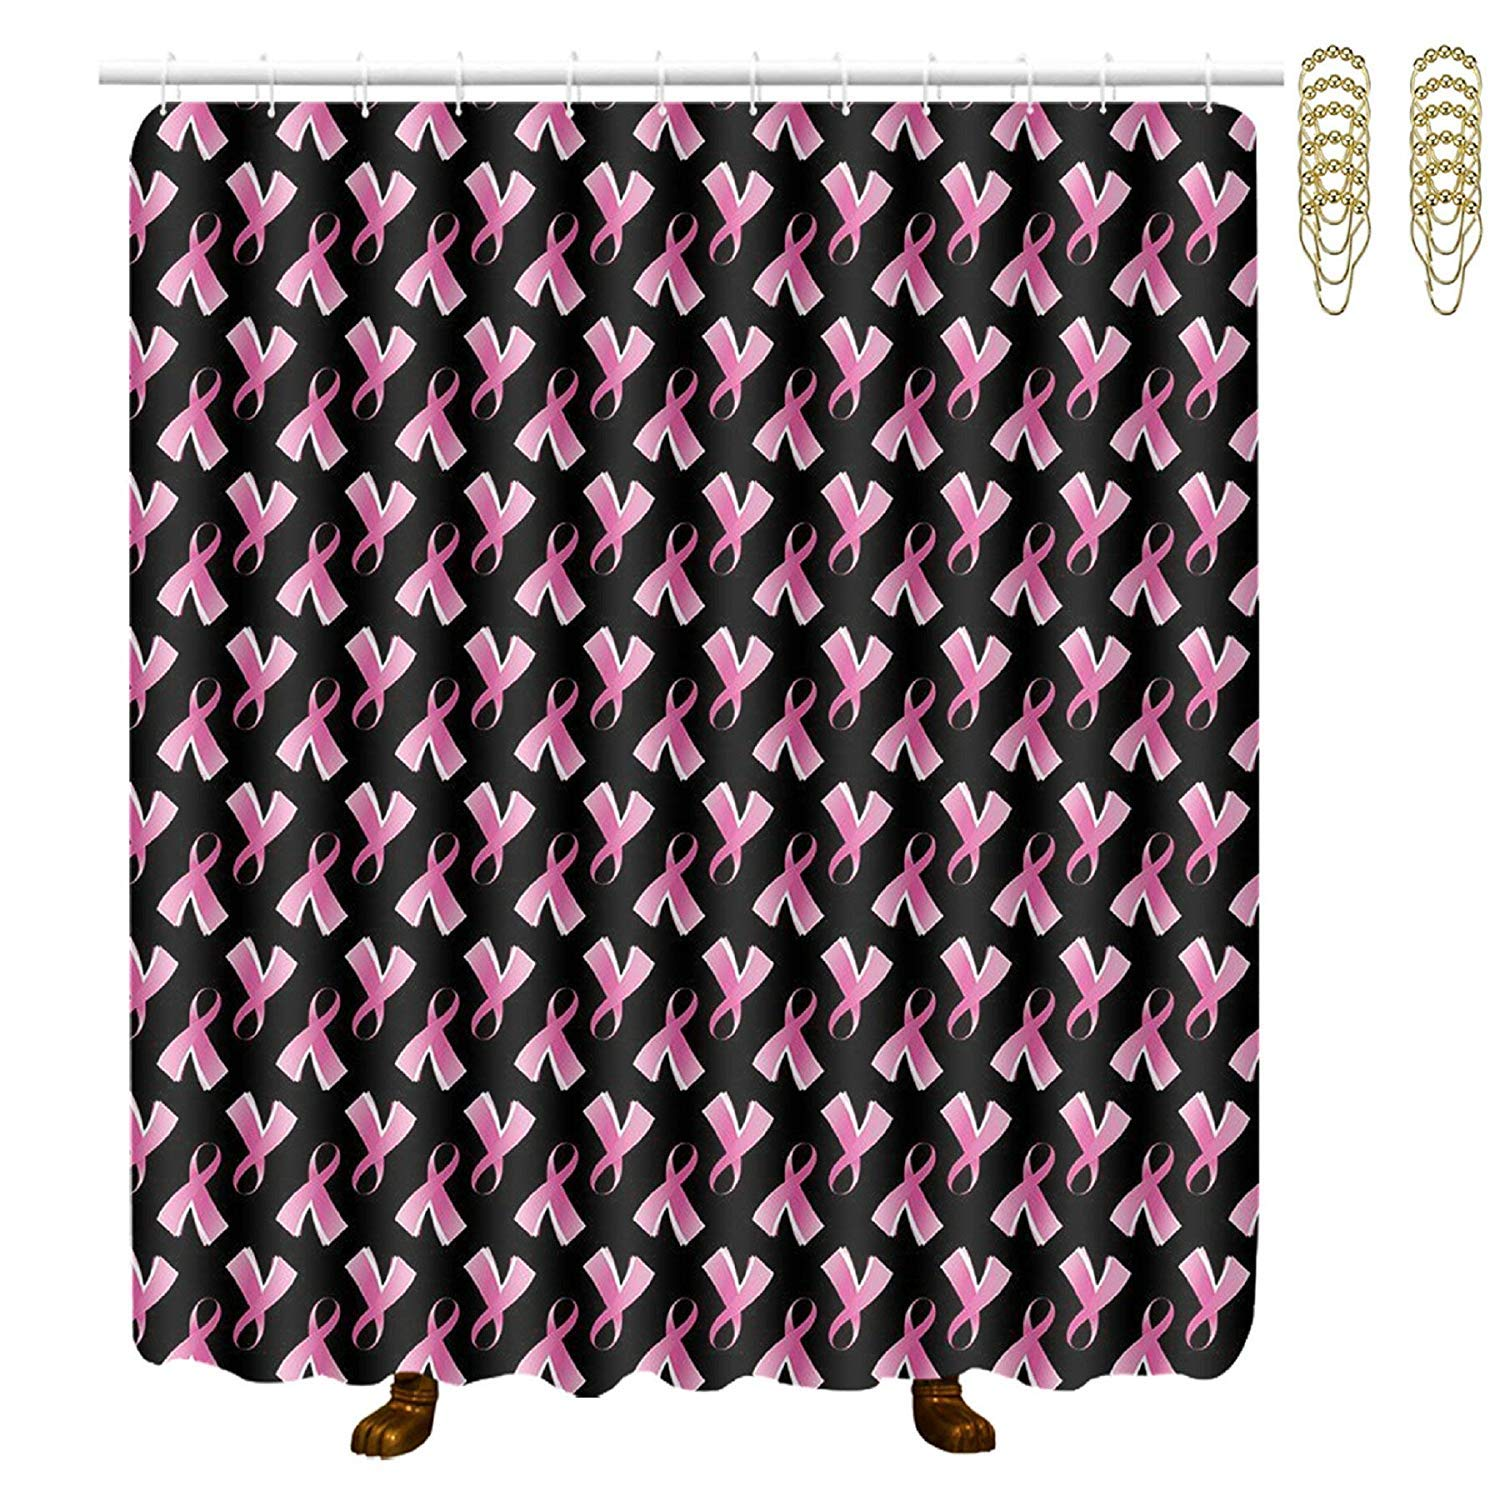 COVASA Decorative Water Repellant Shower Curtain 72x72 Inches Comes with 12 Hooks (Breast Cancer Pink Ribbon)